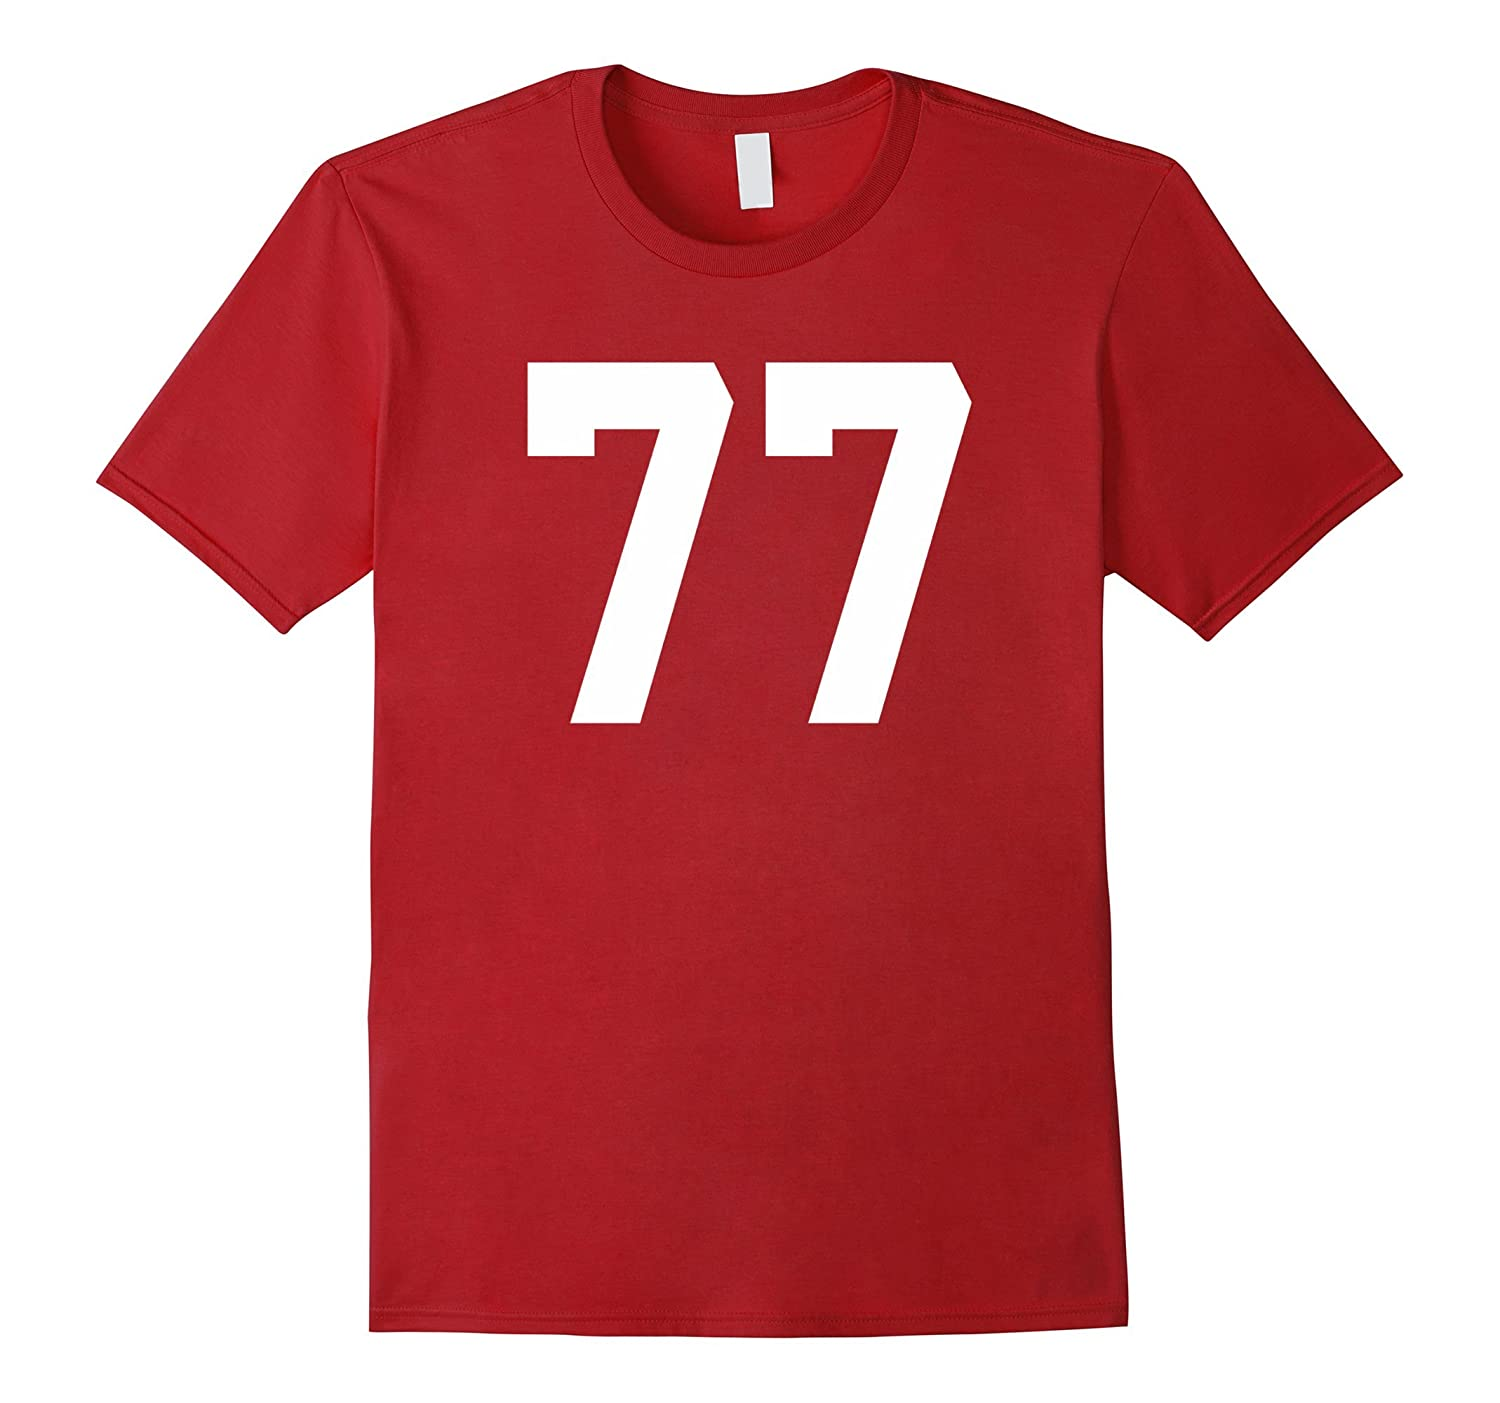 77 Sports Jersey Number T-Shirt for Team Fan Player #77-Art